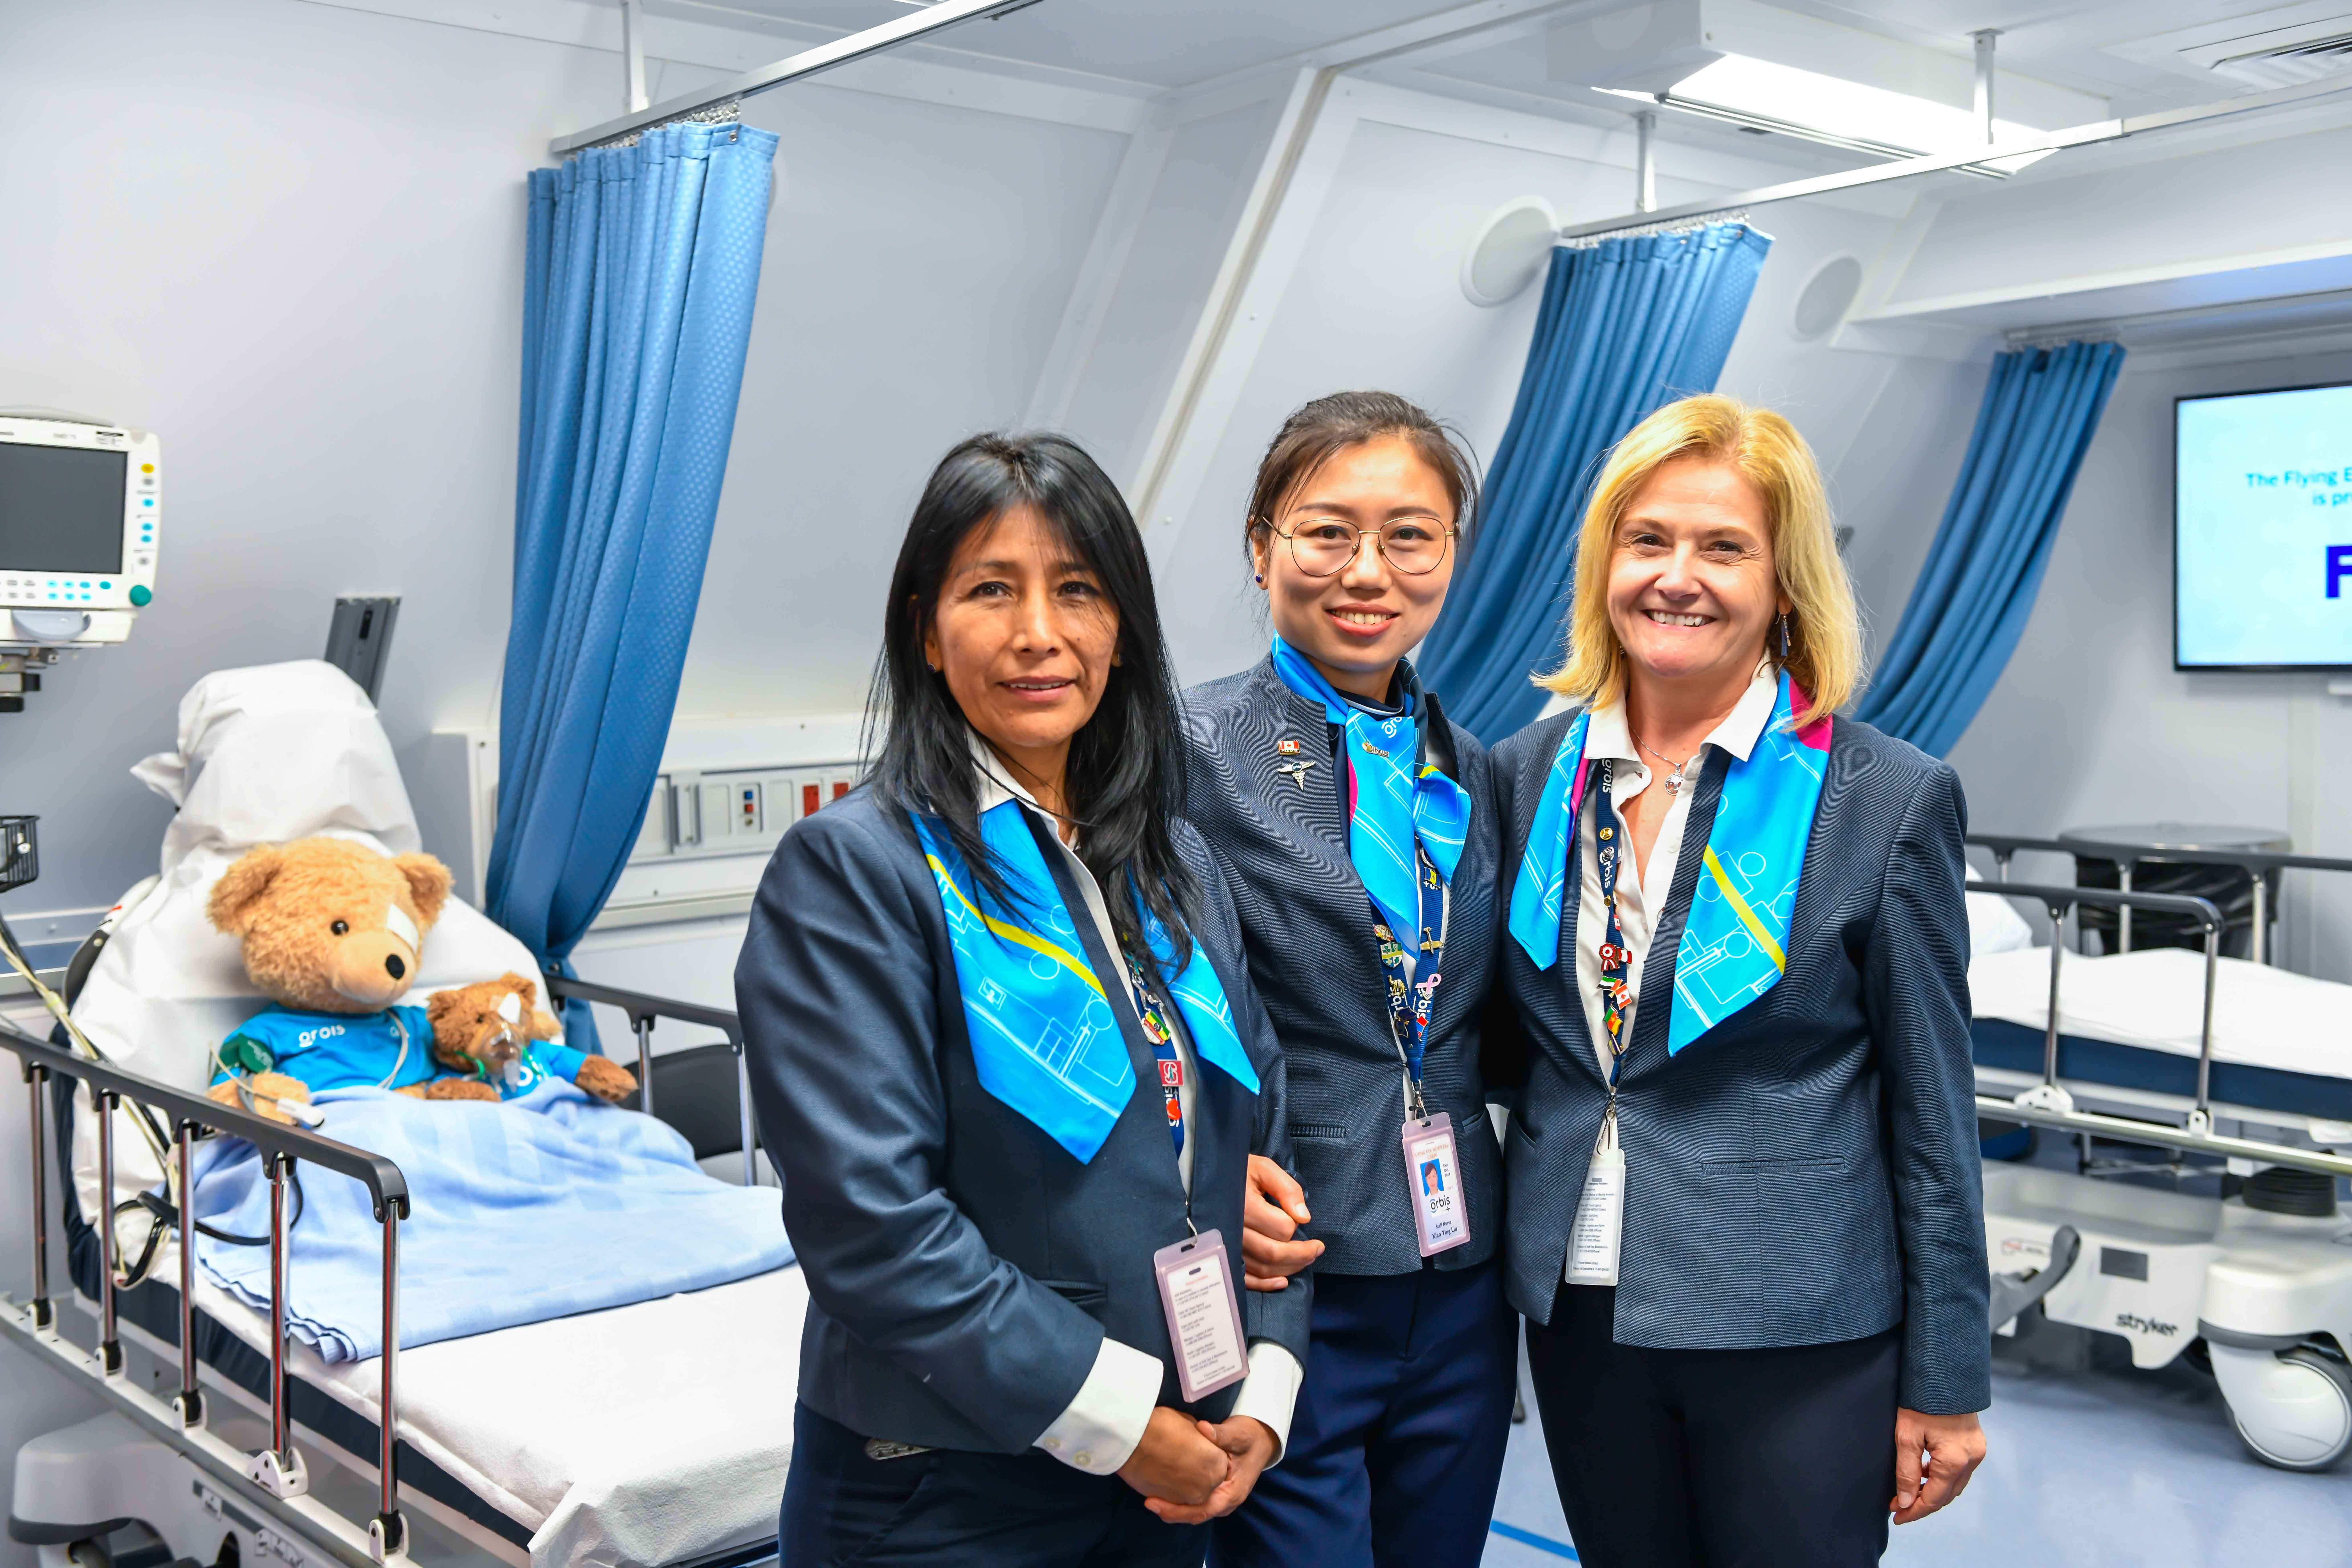 Orbis is completely staffed by volunteers, with nurses like Elisa Urruchi, Xiao Ying Liu, Monelle Ross (L to R) pictured here. Rob Reyno Photo